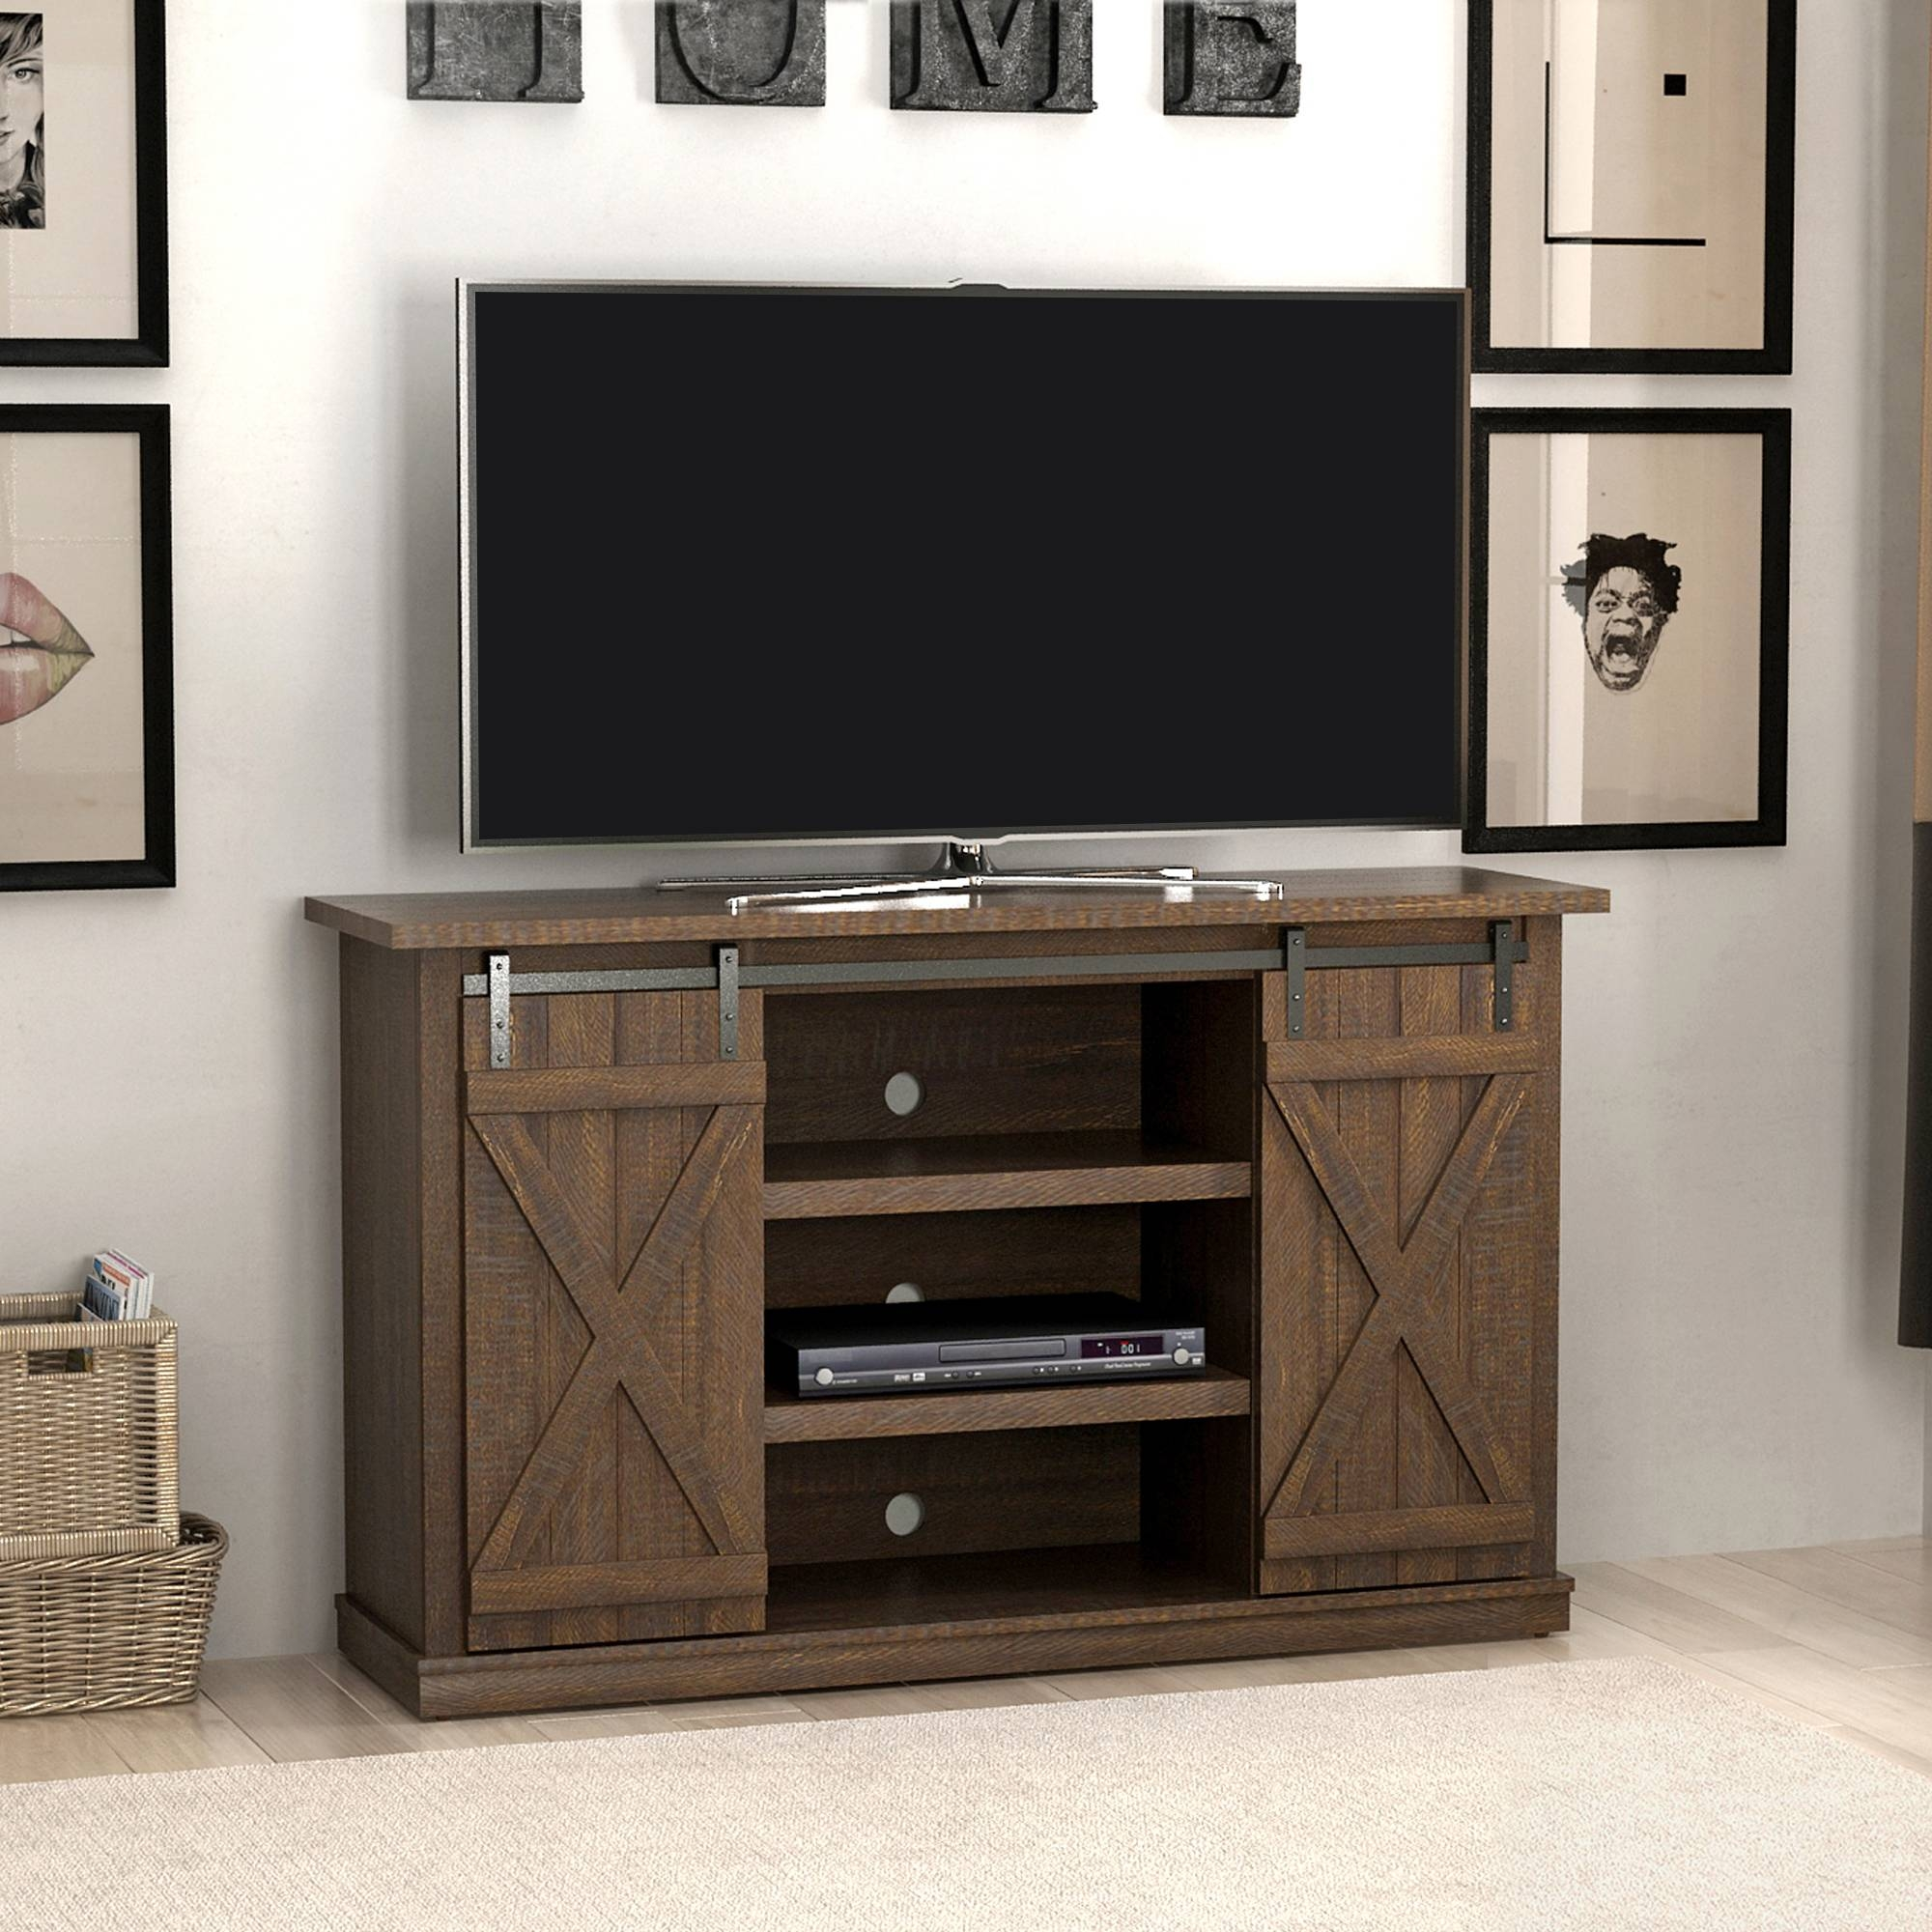 Tv Stands - Walmart intended for 24 Inch Wide Tv Stands (Image 13 of 15)